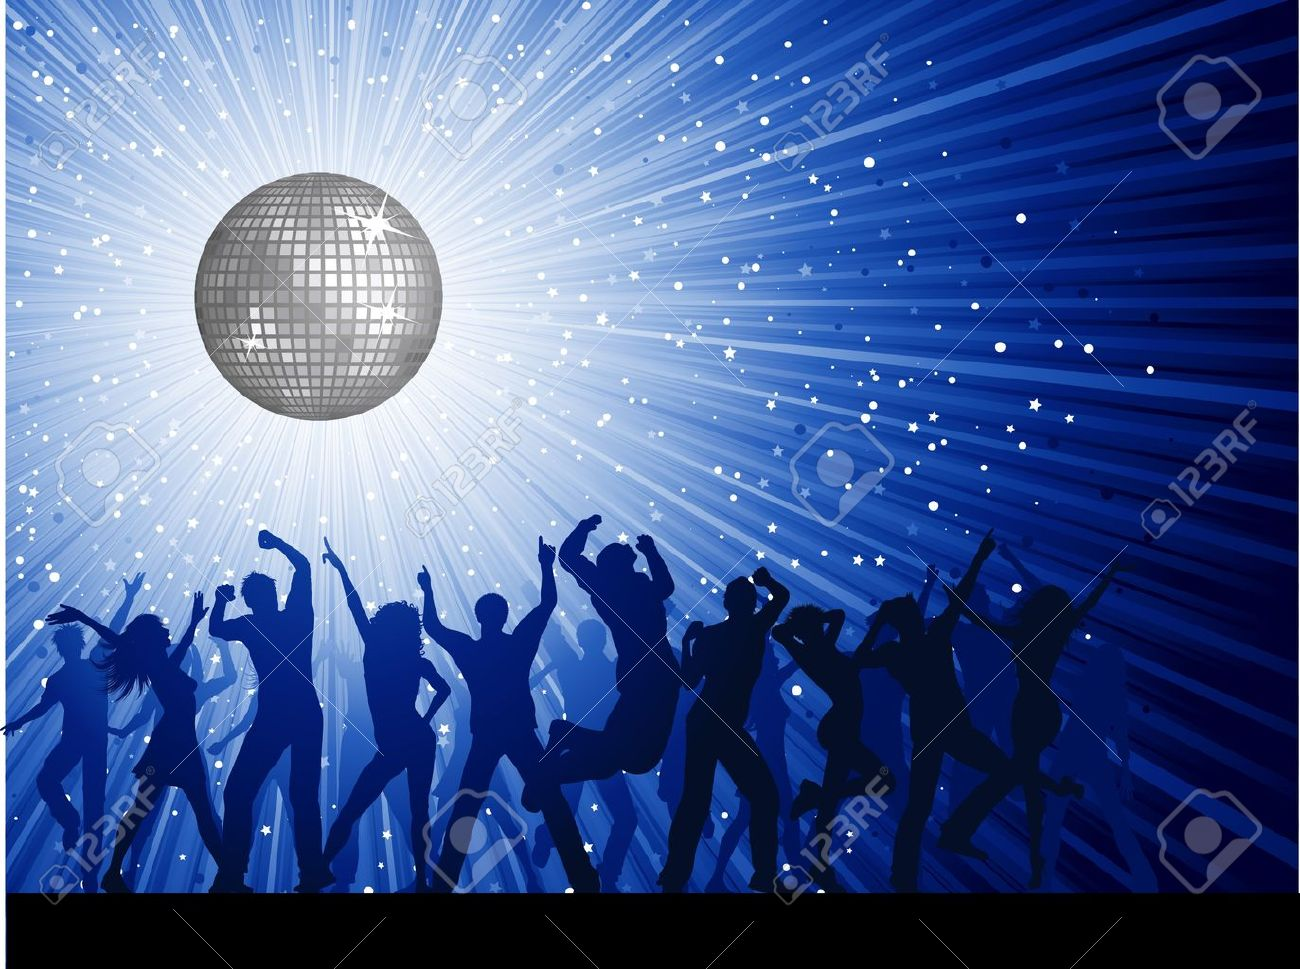 Image result for disco ball crowd